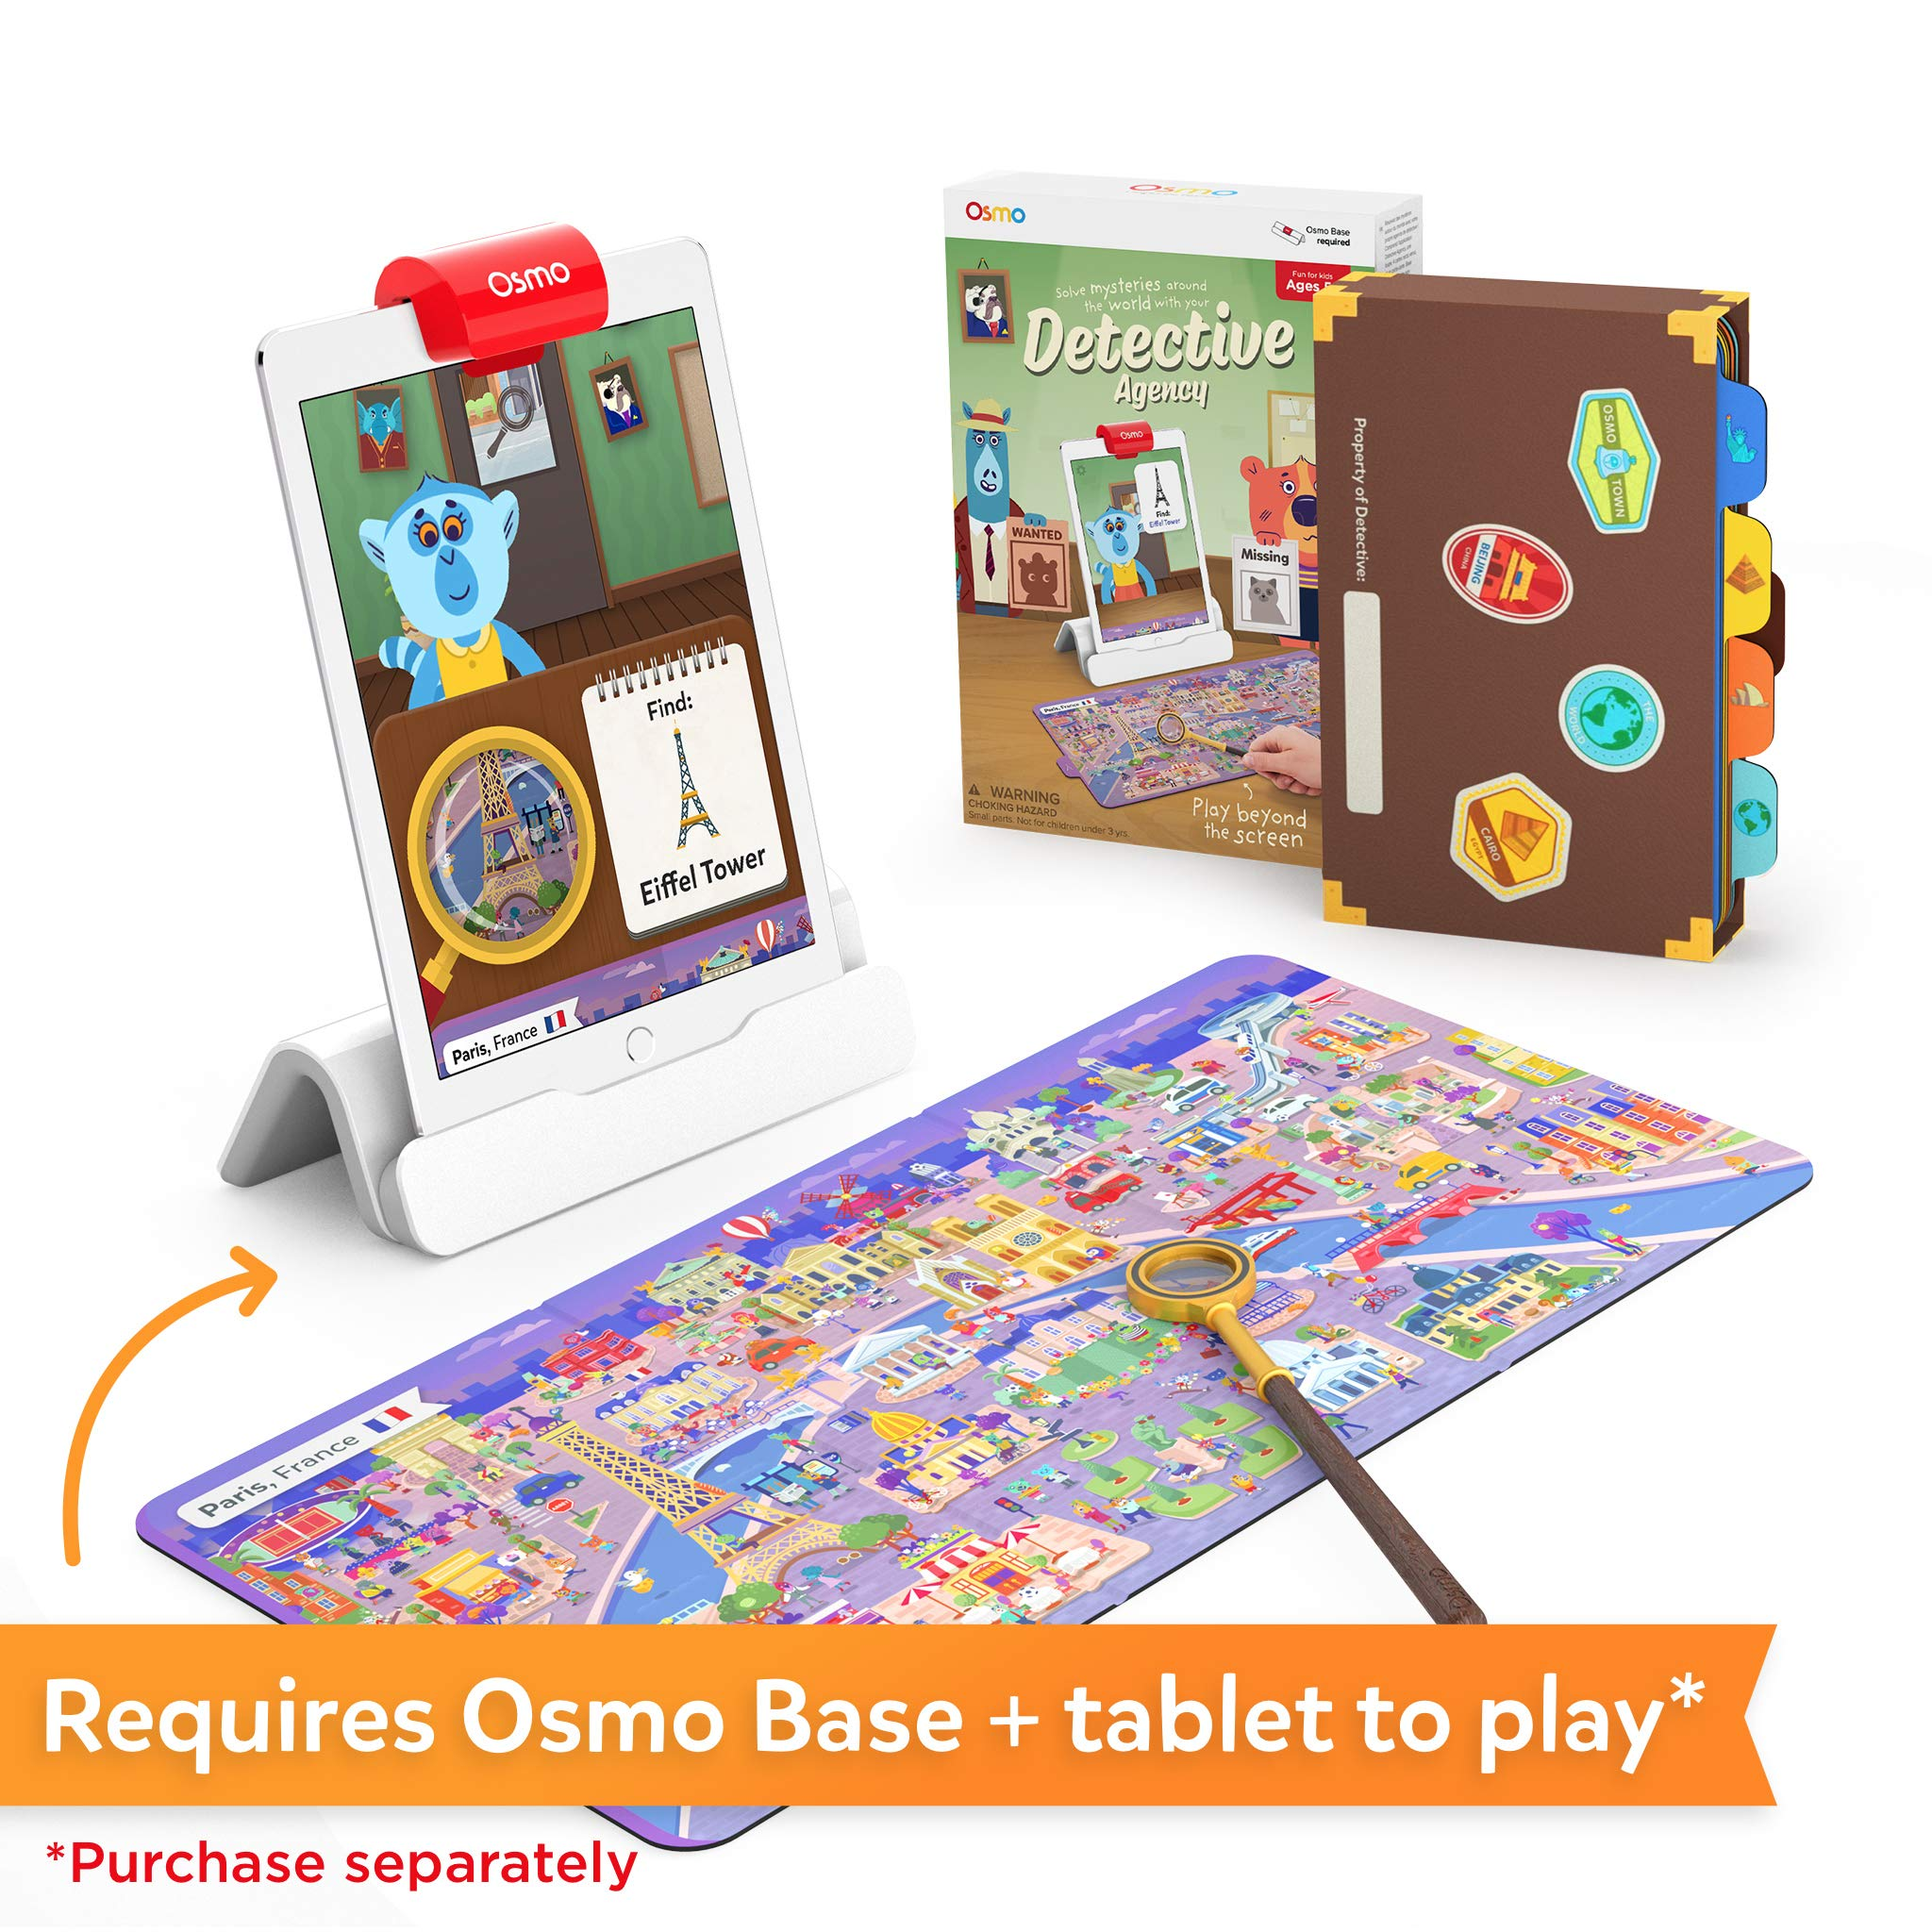 Osmo - Detective Agency: A Search & Find Mystery Game - Ages 5-12 - Explore The World - For iPad and Fire Tablet (Osmo Base Required) by Osmo (Image #2)